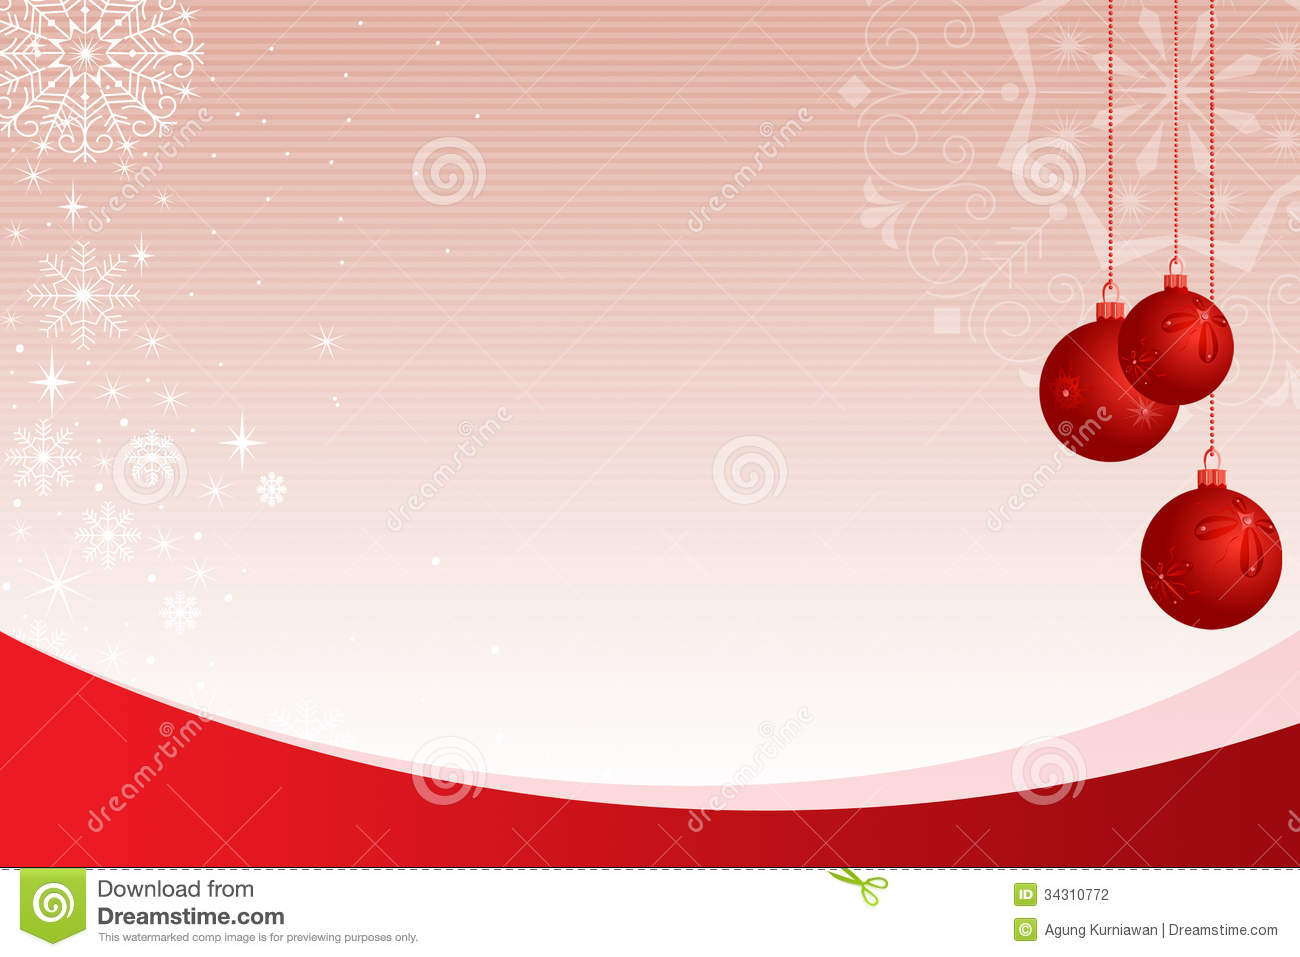 Ornamental Background With Red Bubble Photography Image – Birthday Invitation Background